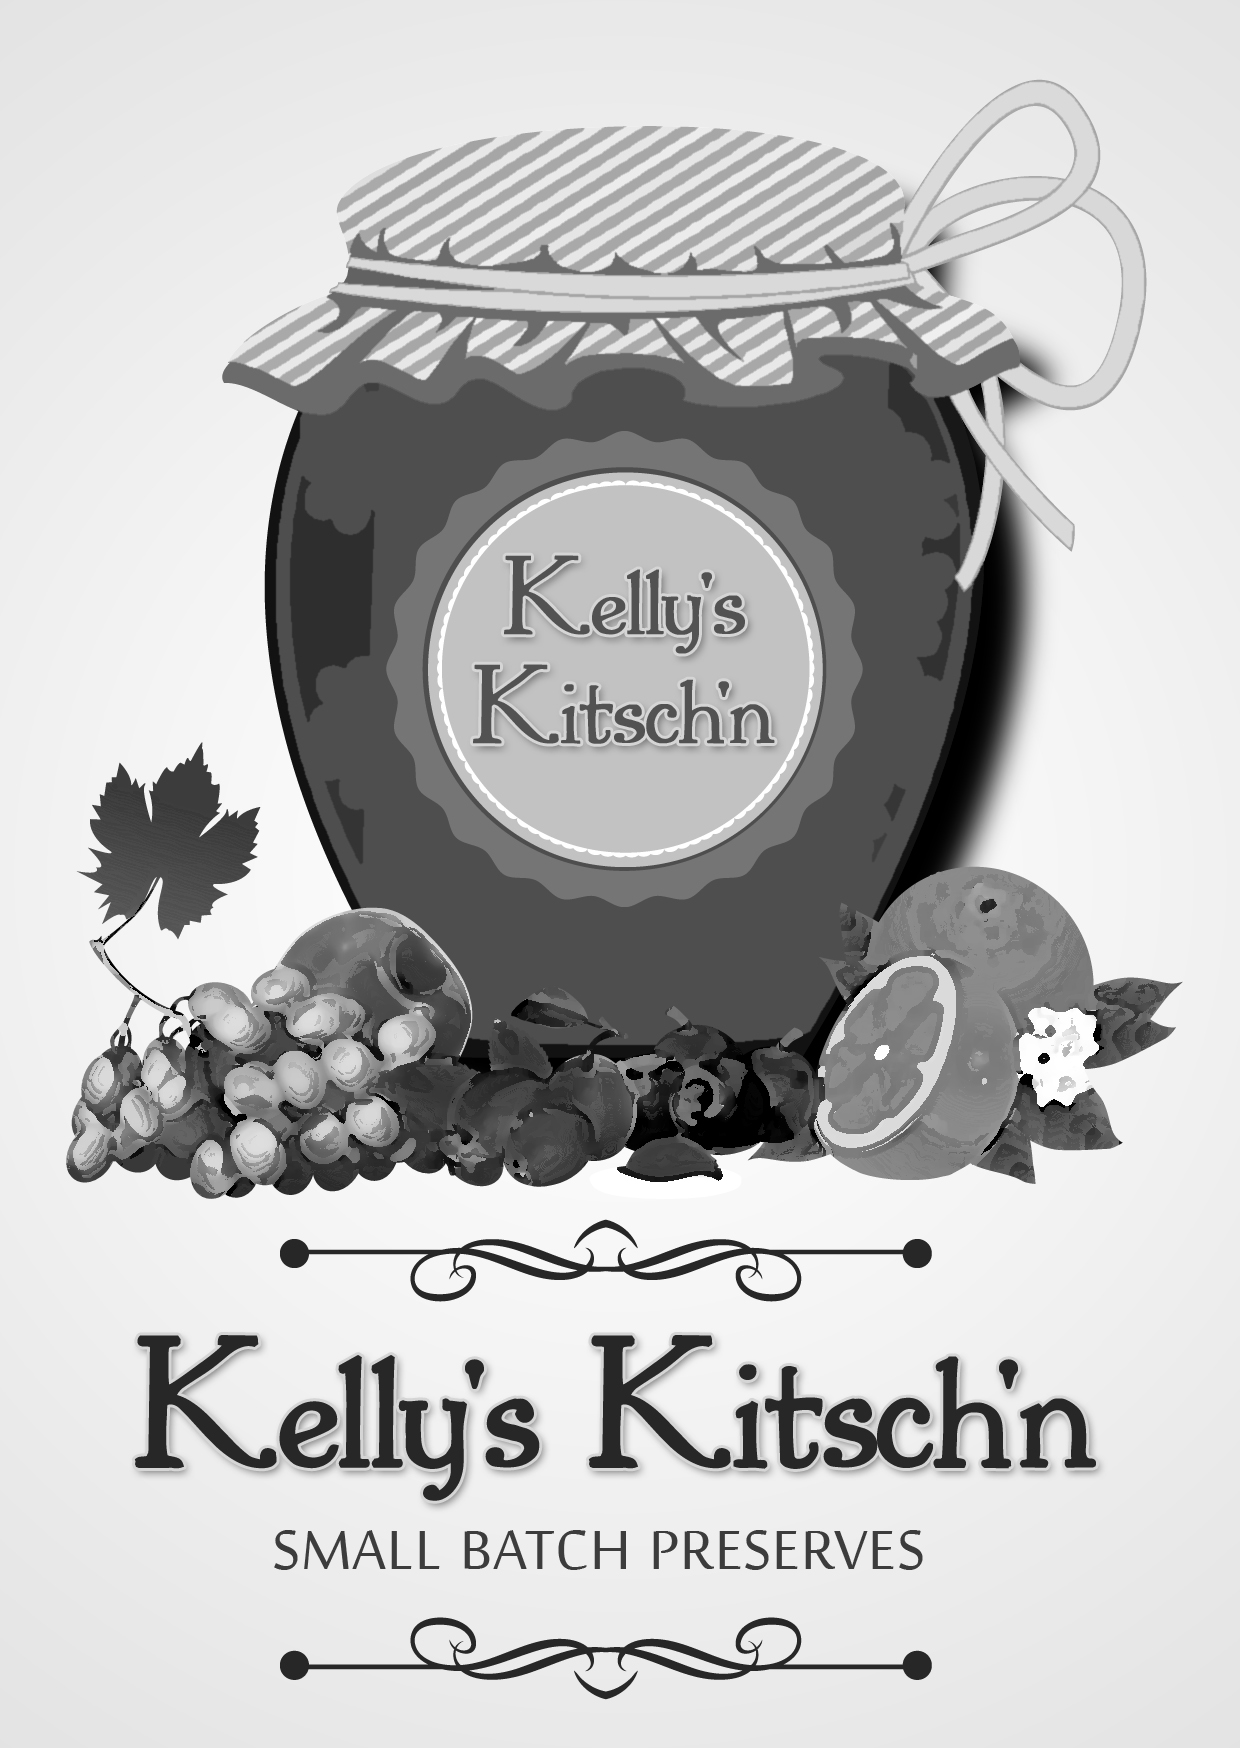 Logo Design by Private User - Entry No. 81 in the Logo Design Contest Unique Logo Design Wanted for Kelly's Kitsch'n.